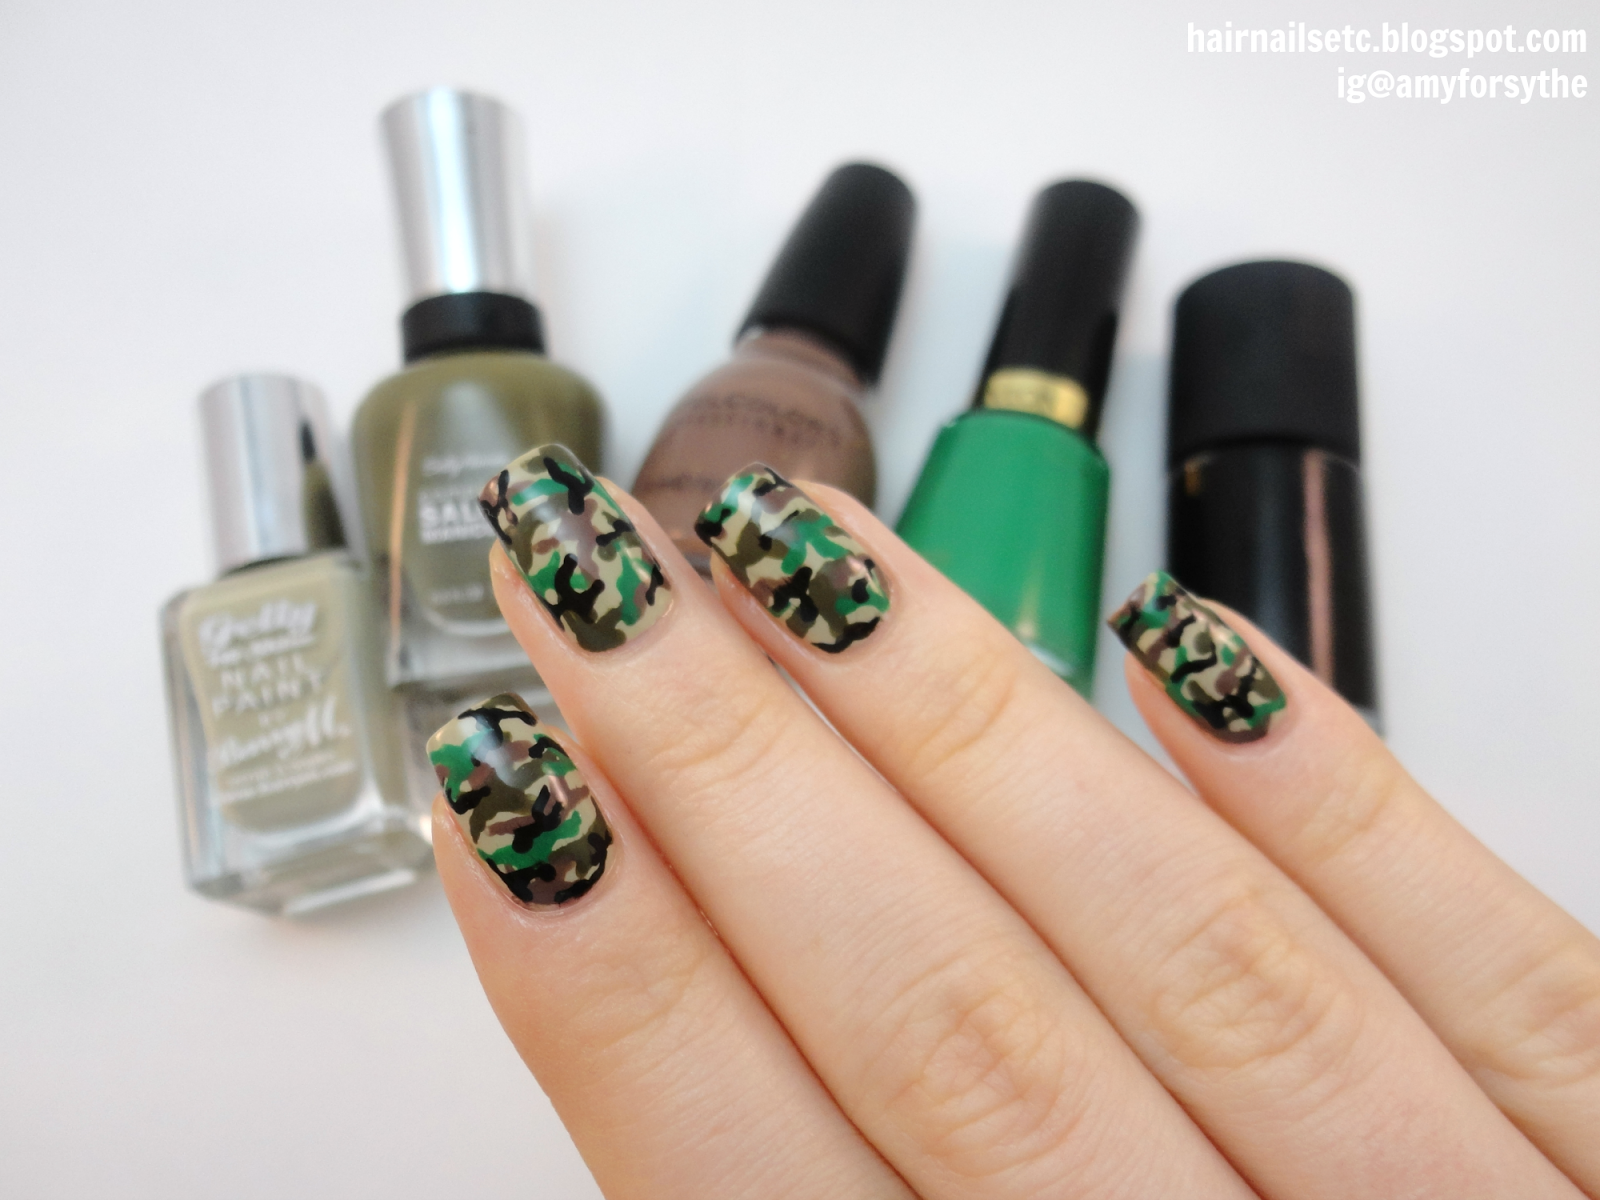 Simple Camouflage Print Nail Art - hairnailsetc.blogspot.co.uk / instagram.com/amyforsythe